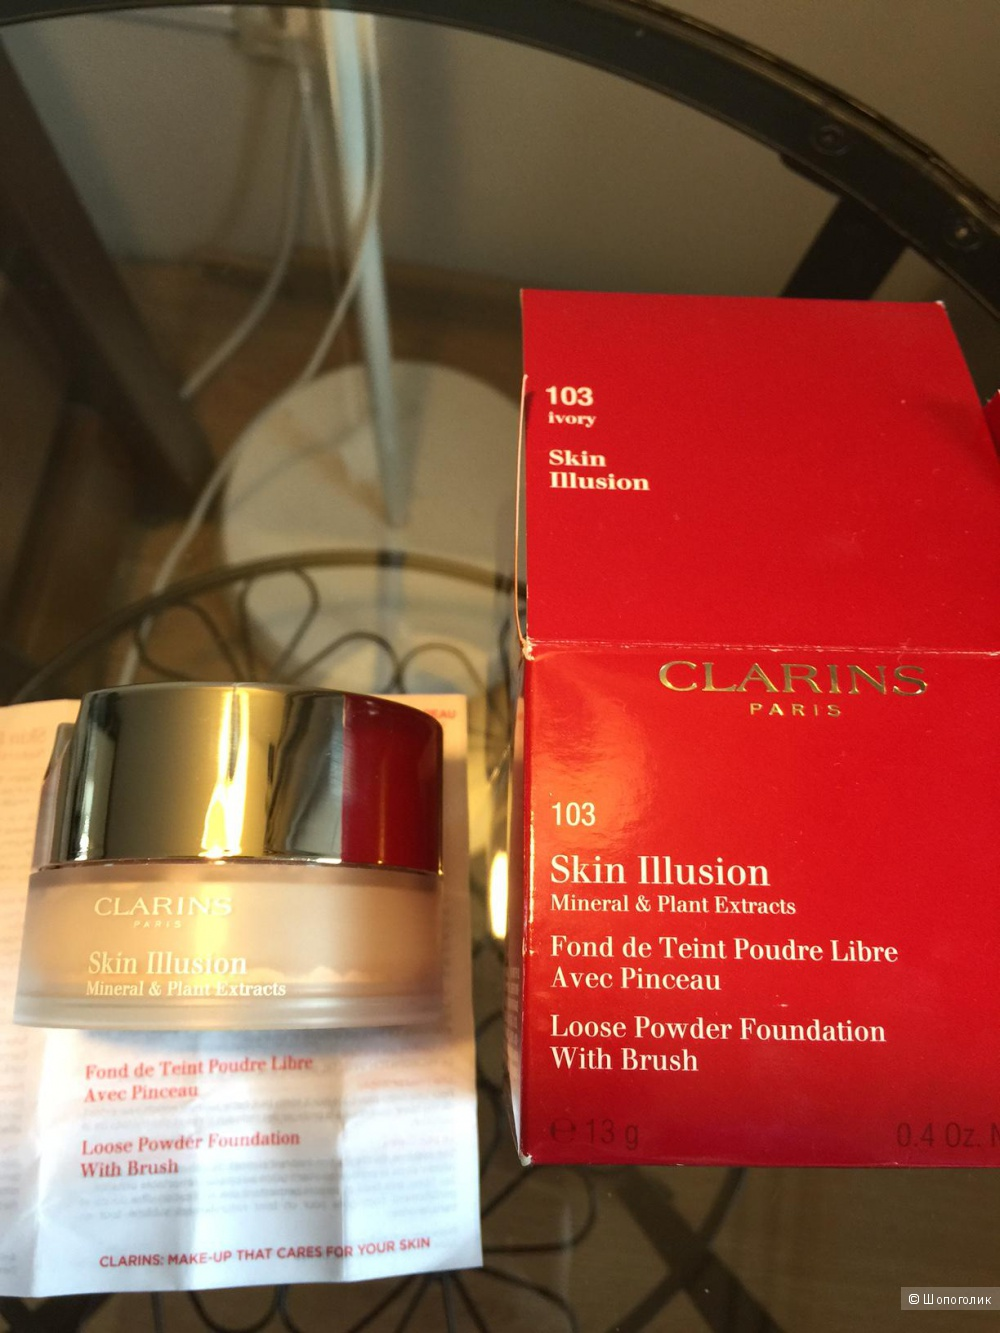 Clarins Skin Illusion Mineral & Plant Extracts Loose Powder Foundation, 103 ivory